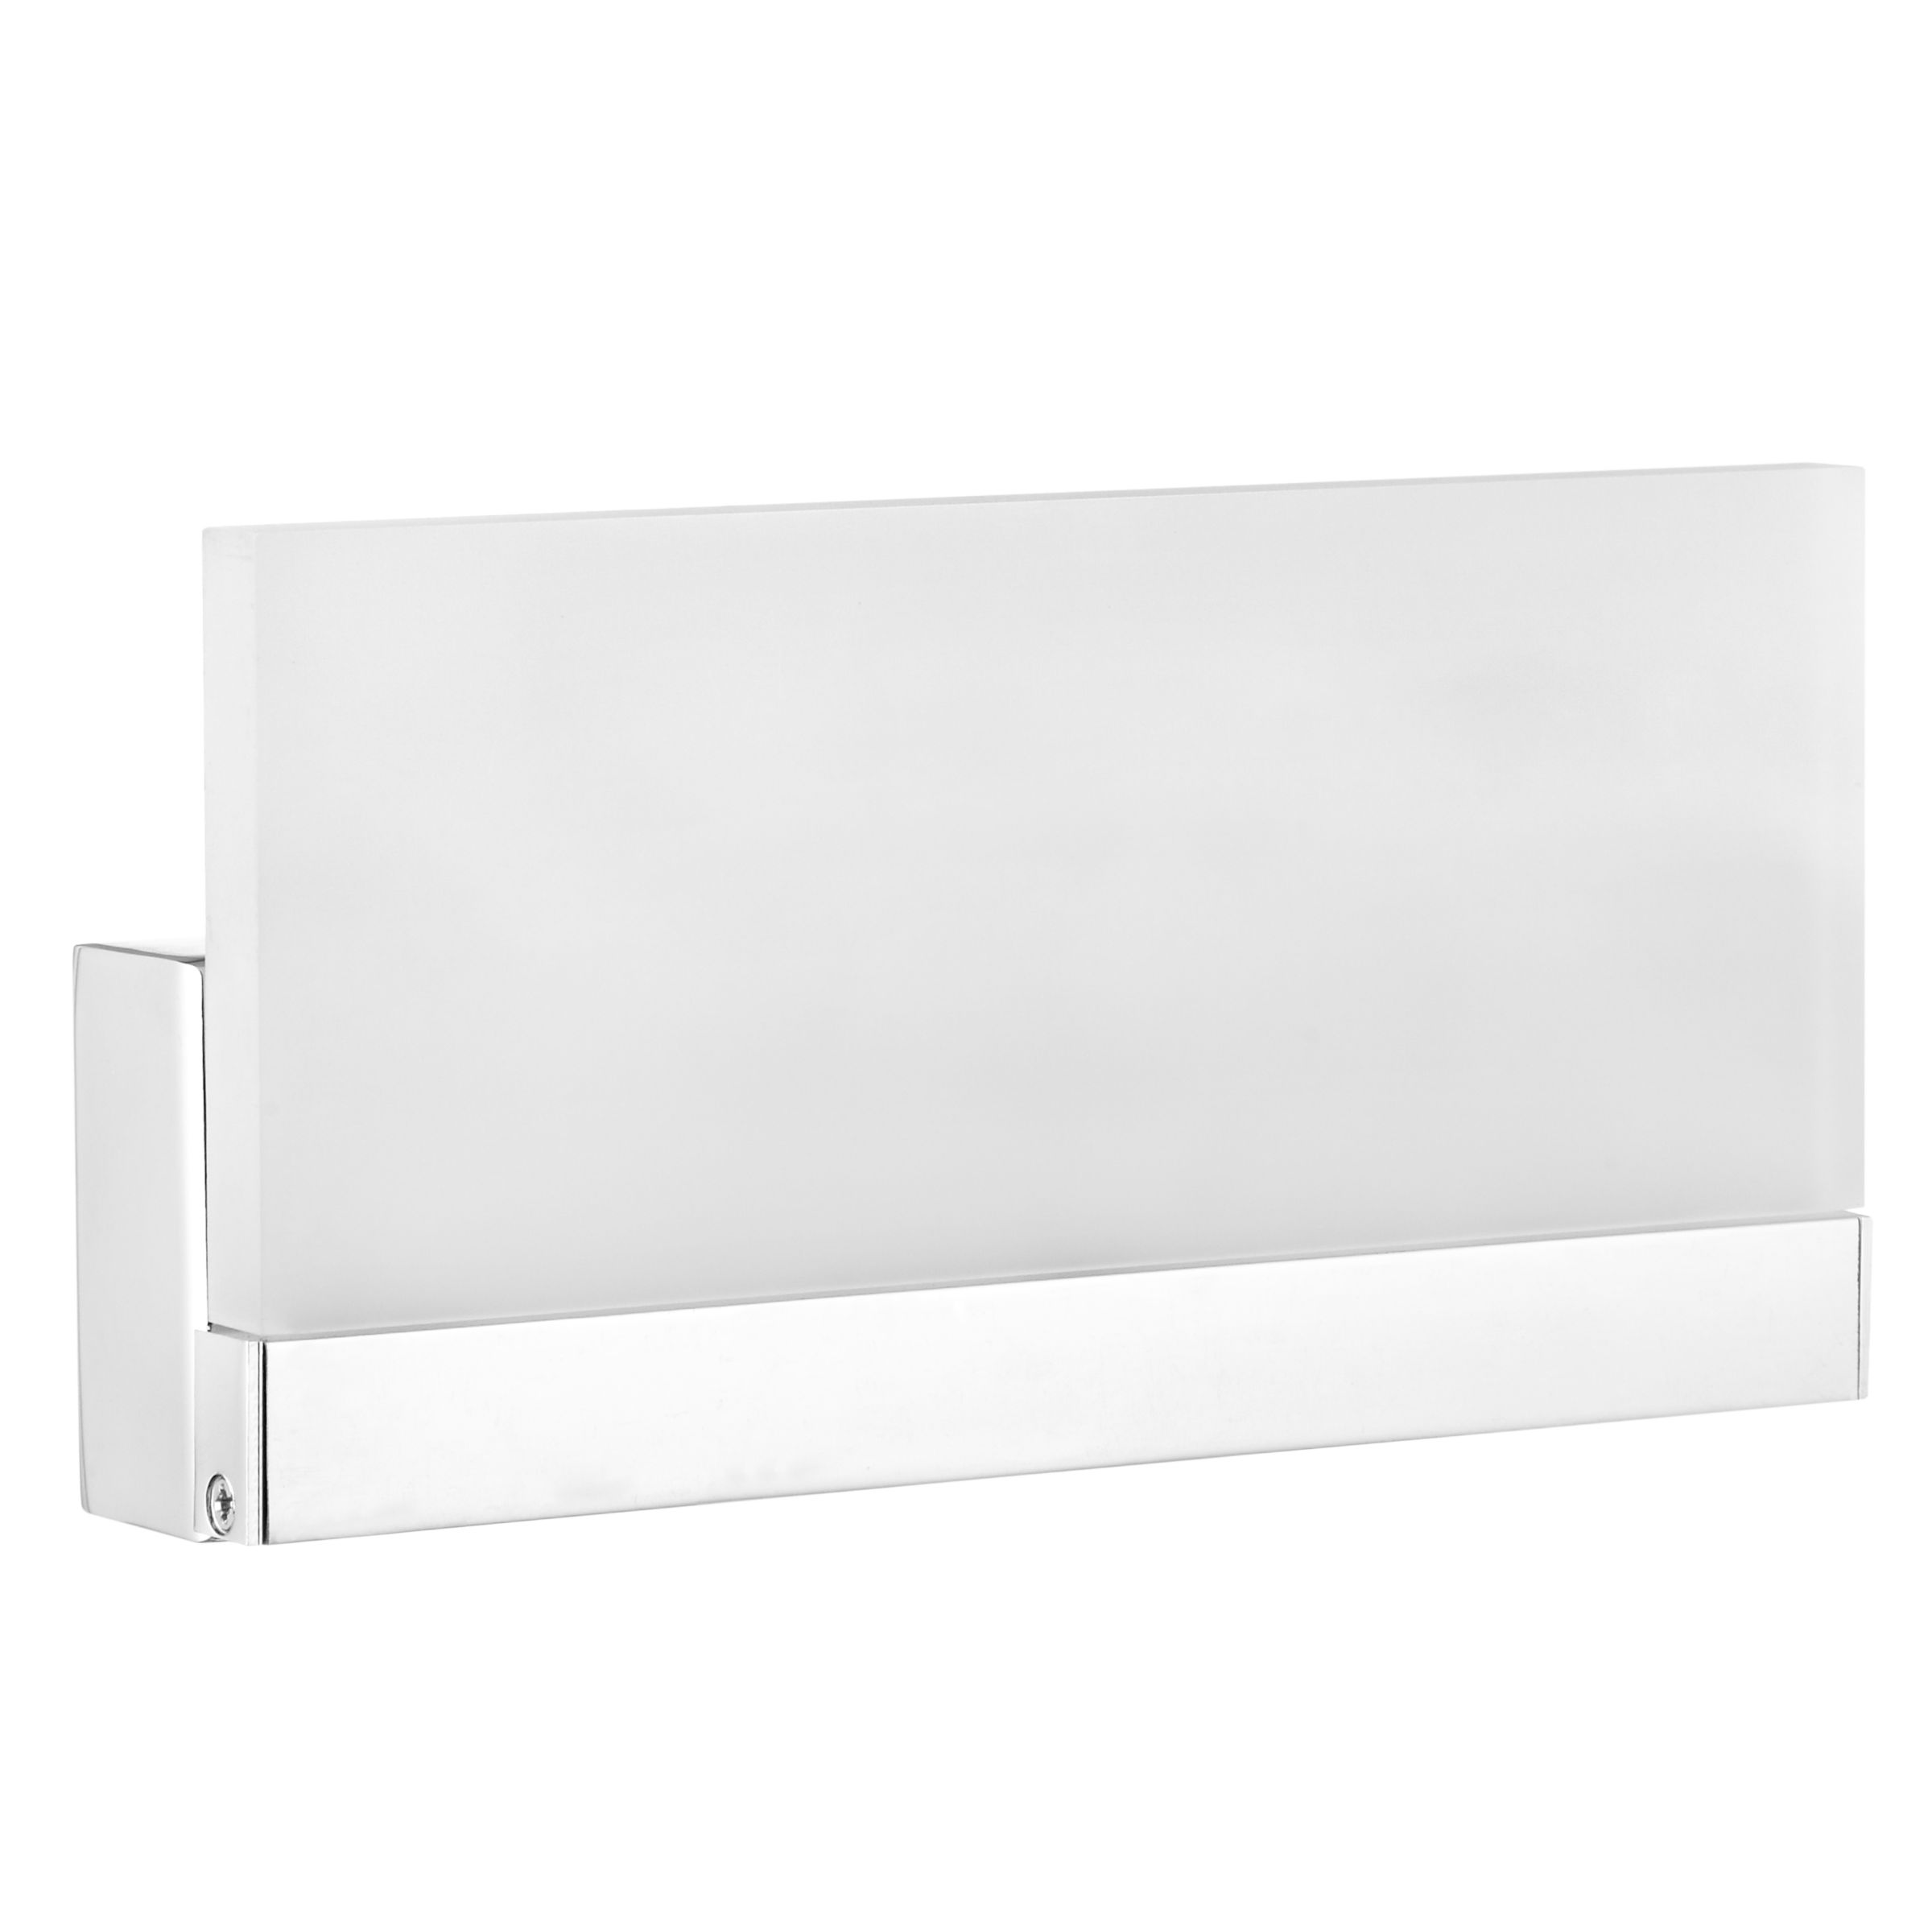 John Lewis Wall Lights Glass : Buy John Lewis Teppo LED Glass Wash Wall Light, Opal John Lewis